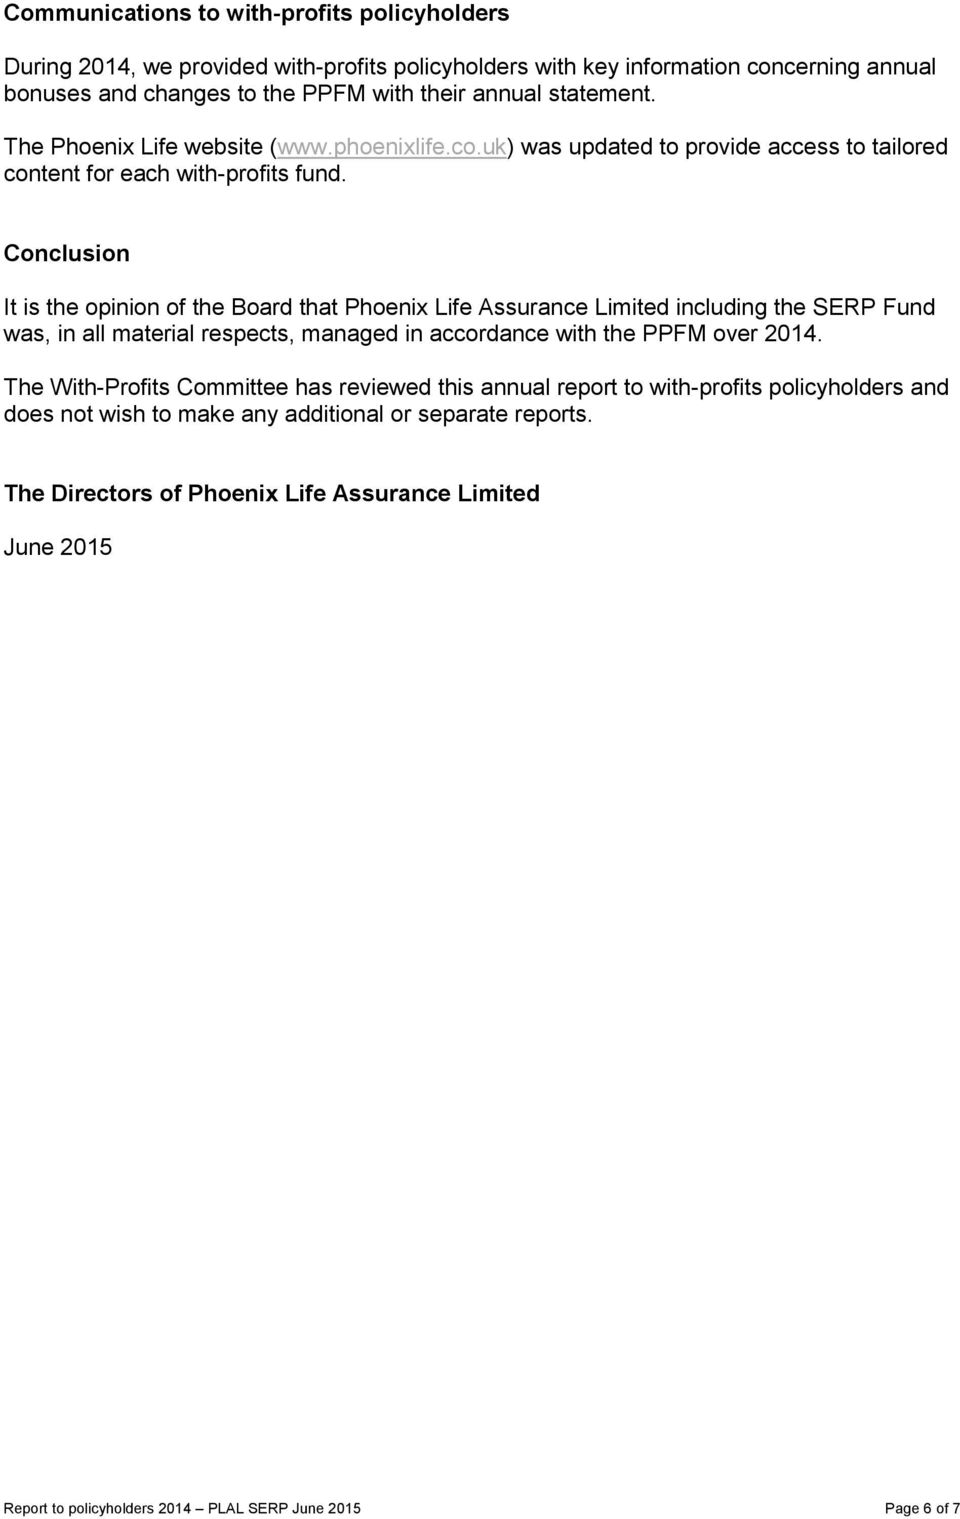 Conclusion It is the opinion of the Board that Phoenix Life Assurance Limited including the SERP Fund was, in all material respects, managed in accordance with the PPFM over 2014.